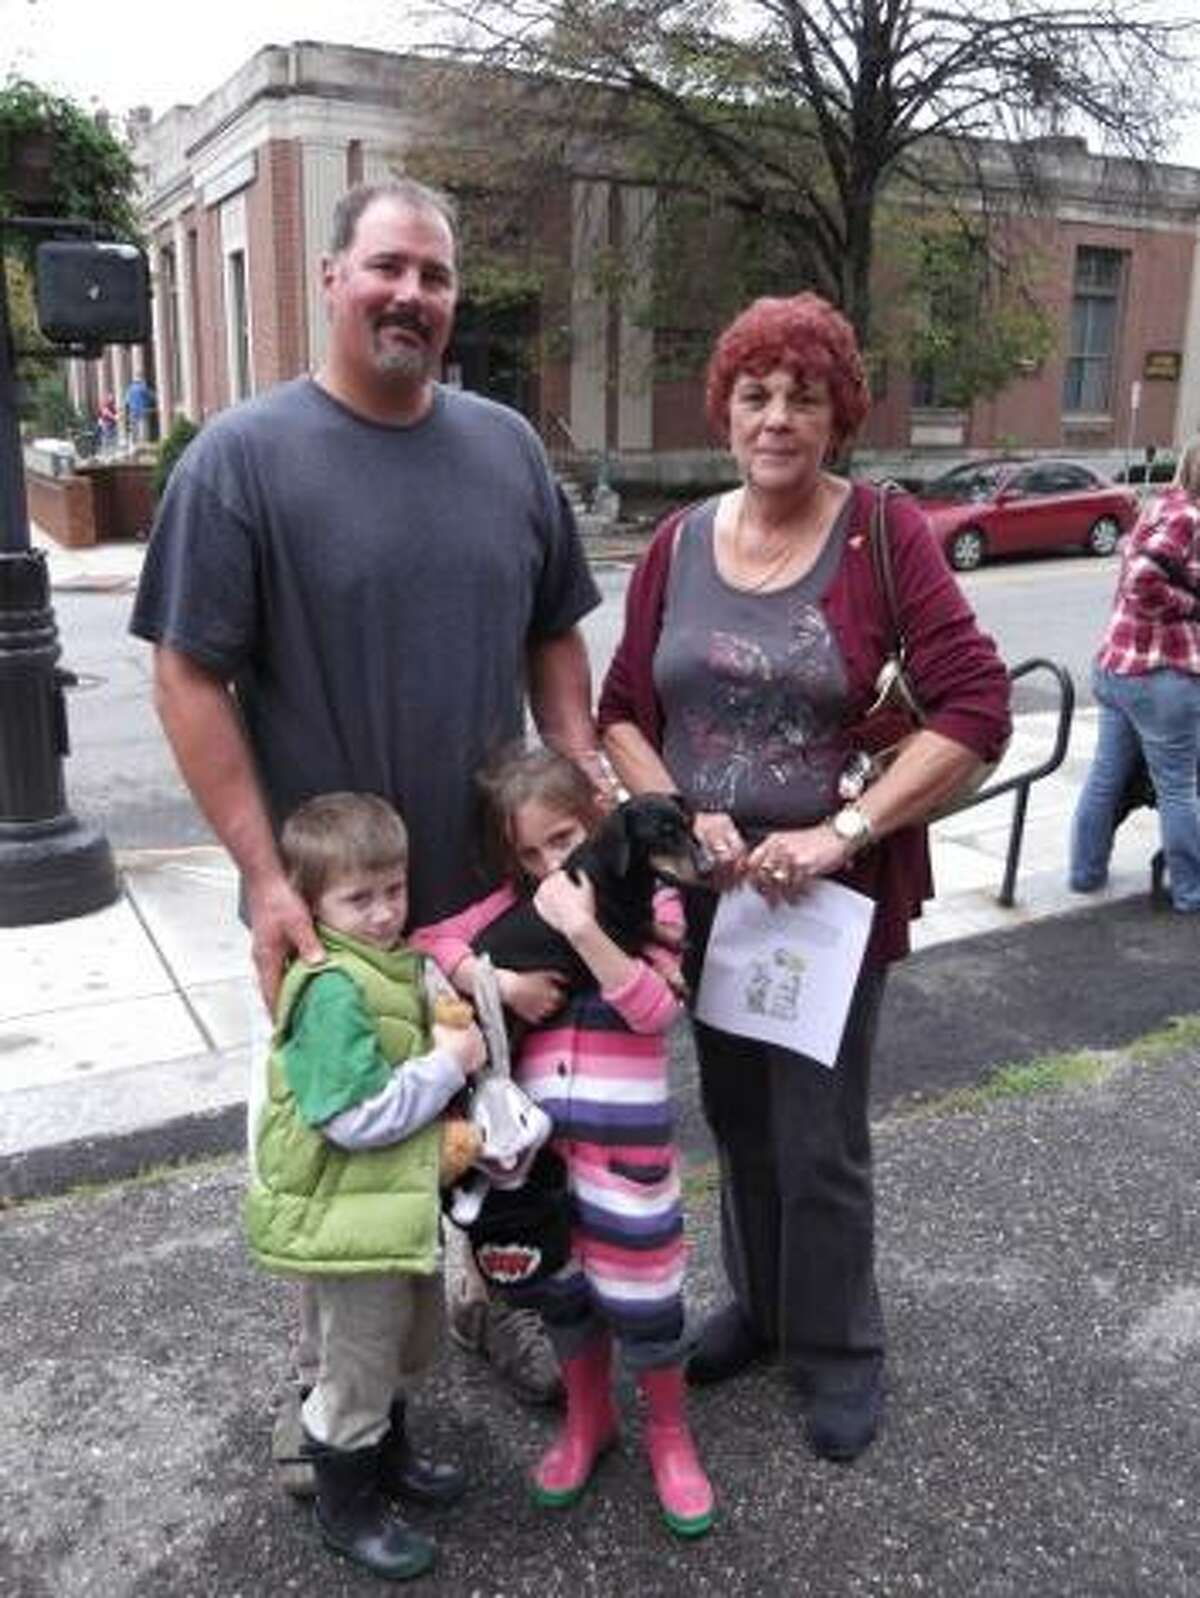 KAITLYN YEAGER/Register Citizen Dog family: Richard Ricupero and his children Isabella and Nicholas wait with Grandma Kenneson and their dog Blackie for the Blessing of the Animals to begin at St. Francis Church. This year's event was the second blessing and first pet parade for the church.